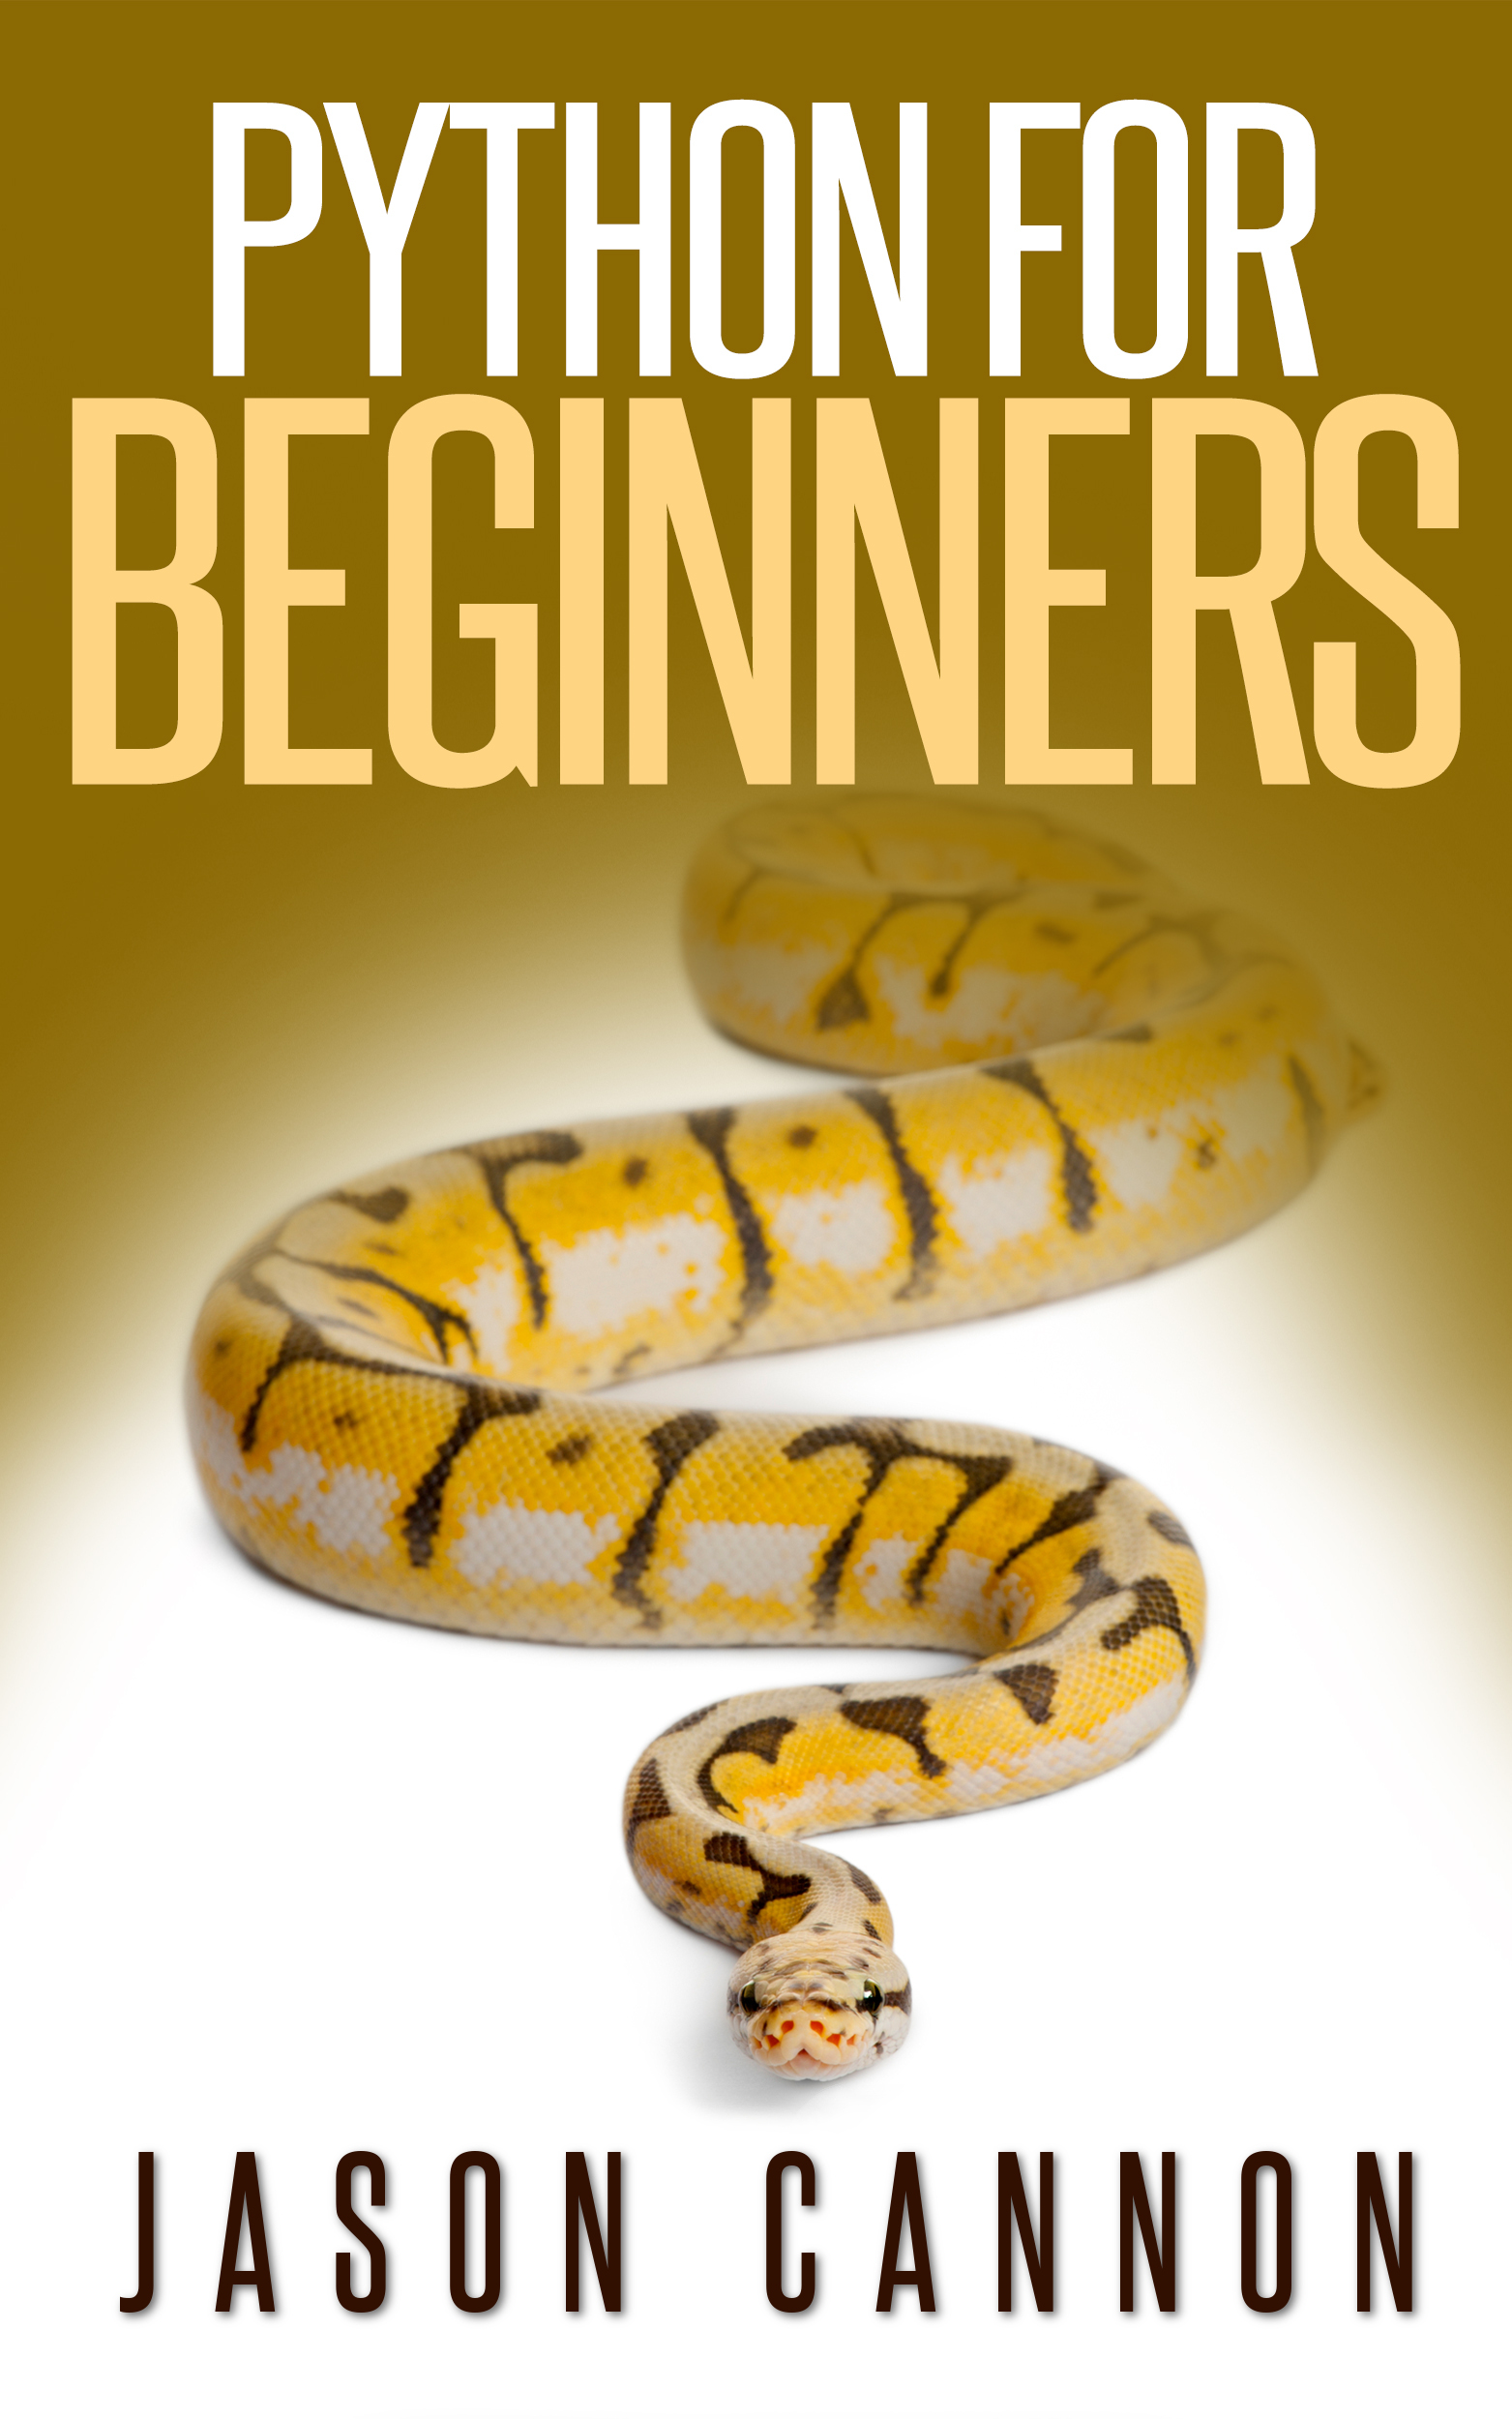 Python programming for beginners: an introduction to the python computer language